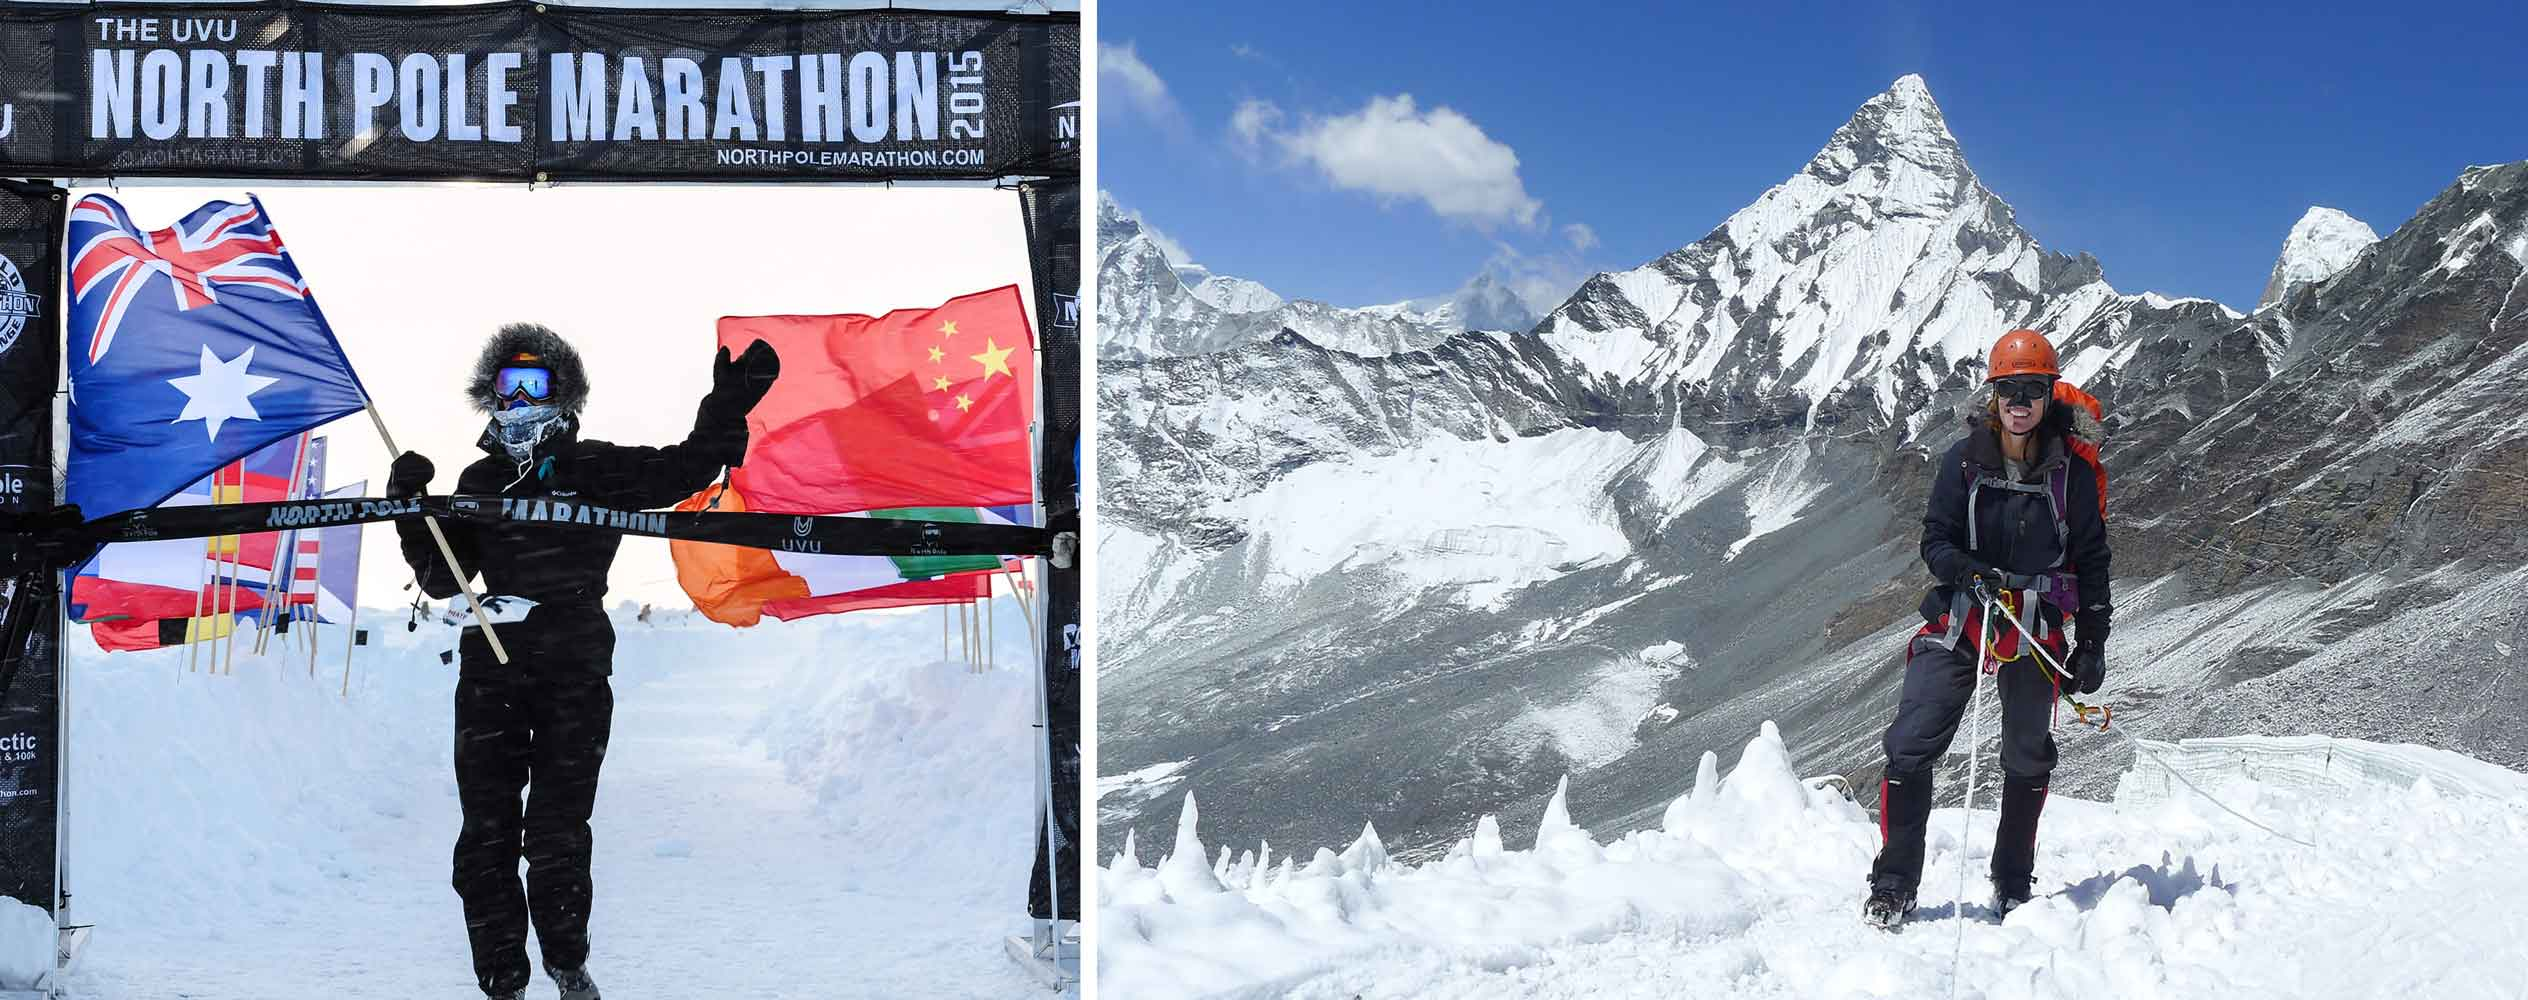 Heather Hawkins adventure runner - North Pole Marathon and hiking the Great Himalayan Trail